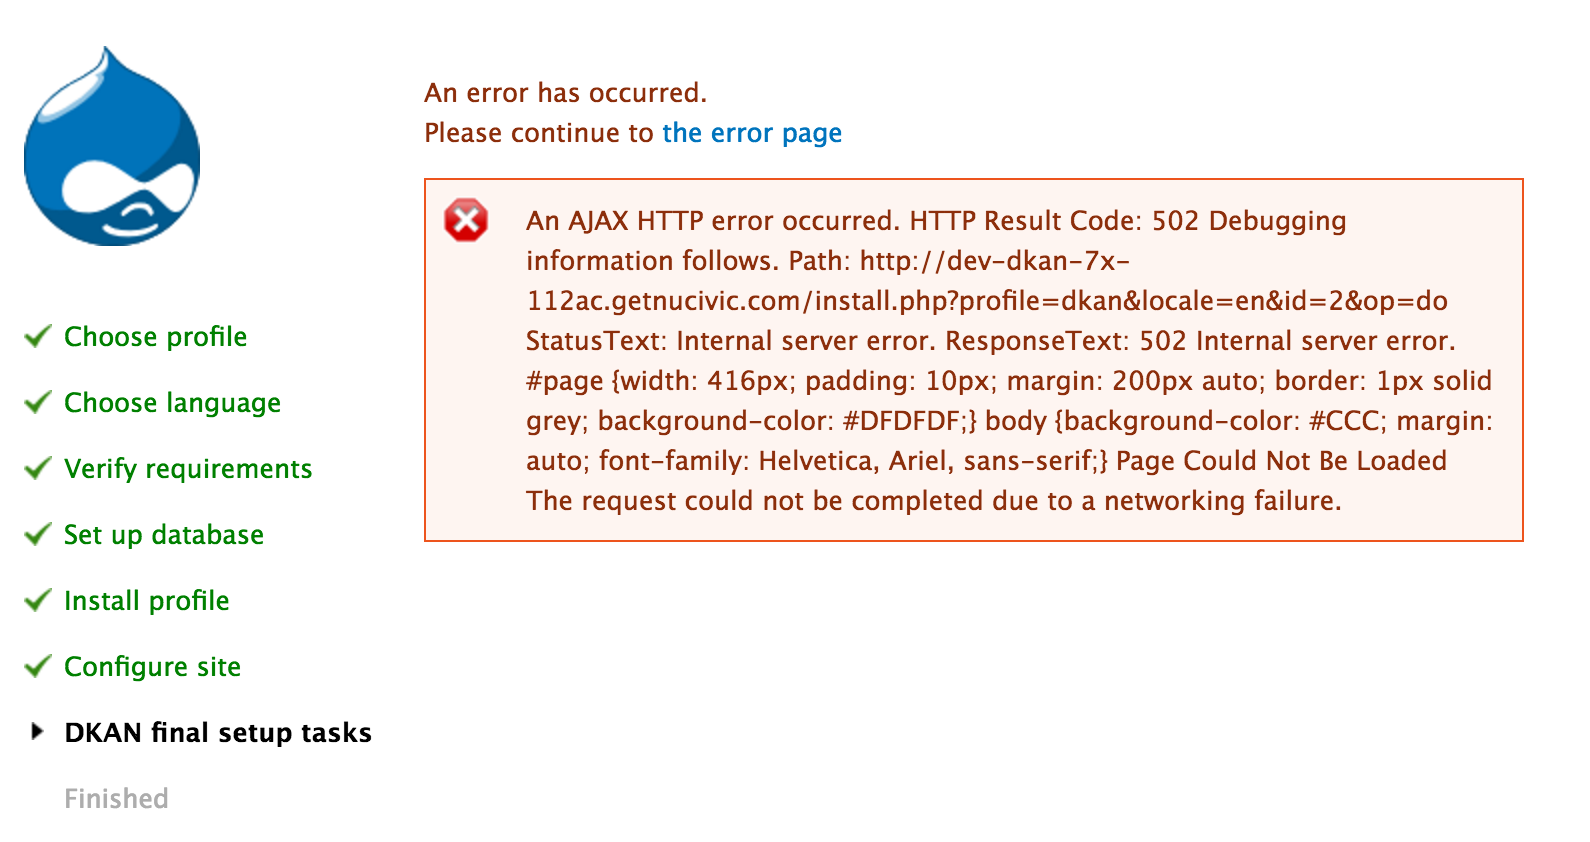 An AJAX HTTP error occurred. HTTP Result Code: 502 Debugging information follows...